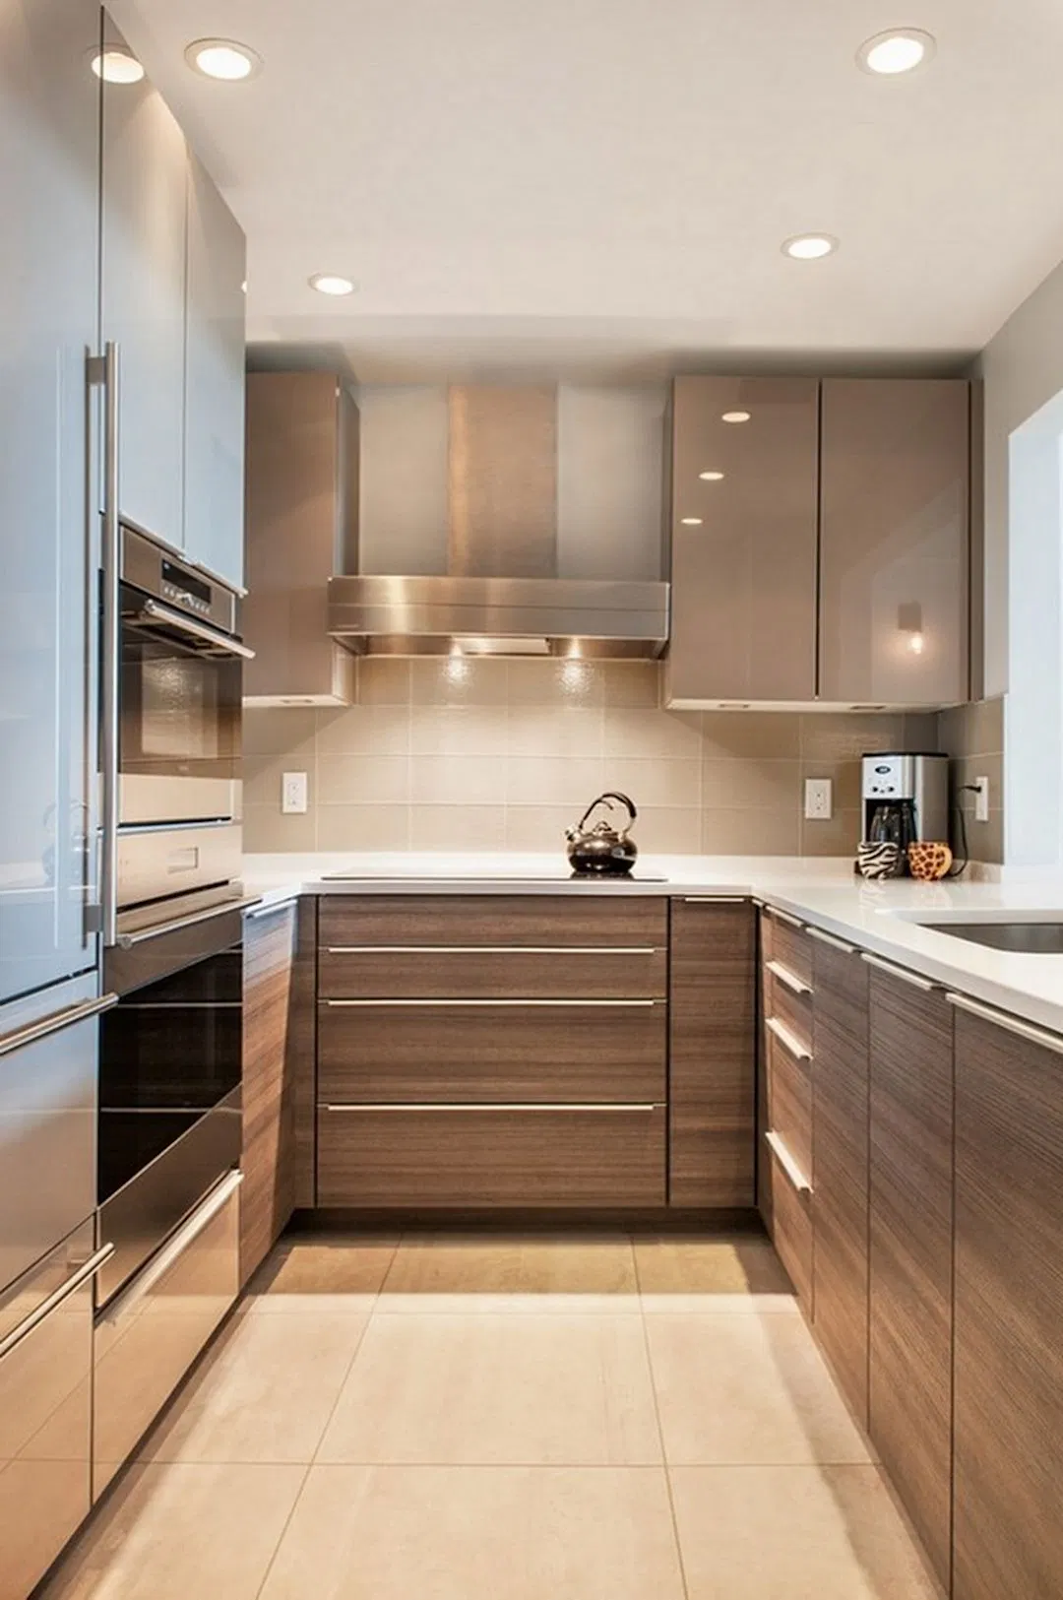 modern kitchen with beige high gloss cabinets, recessed lighting and minimalist decor